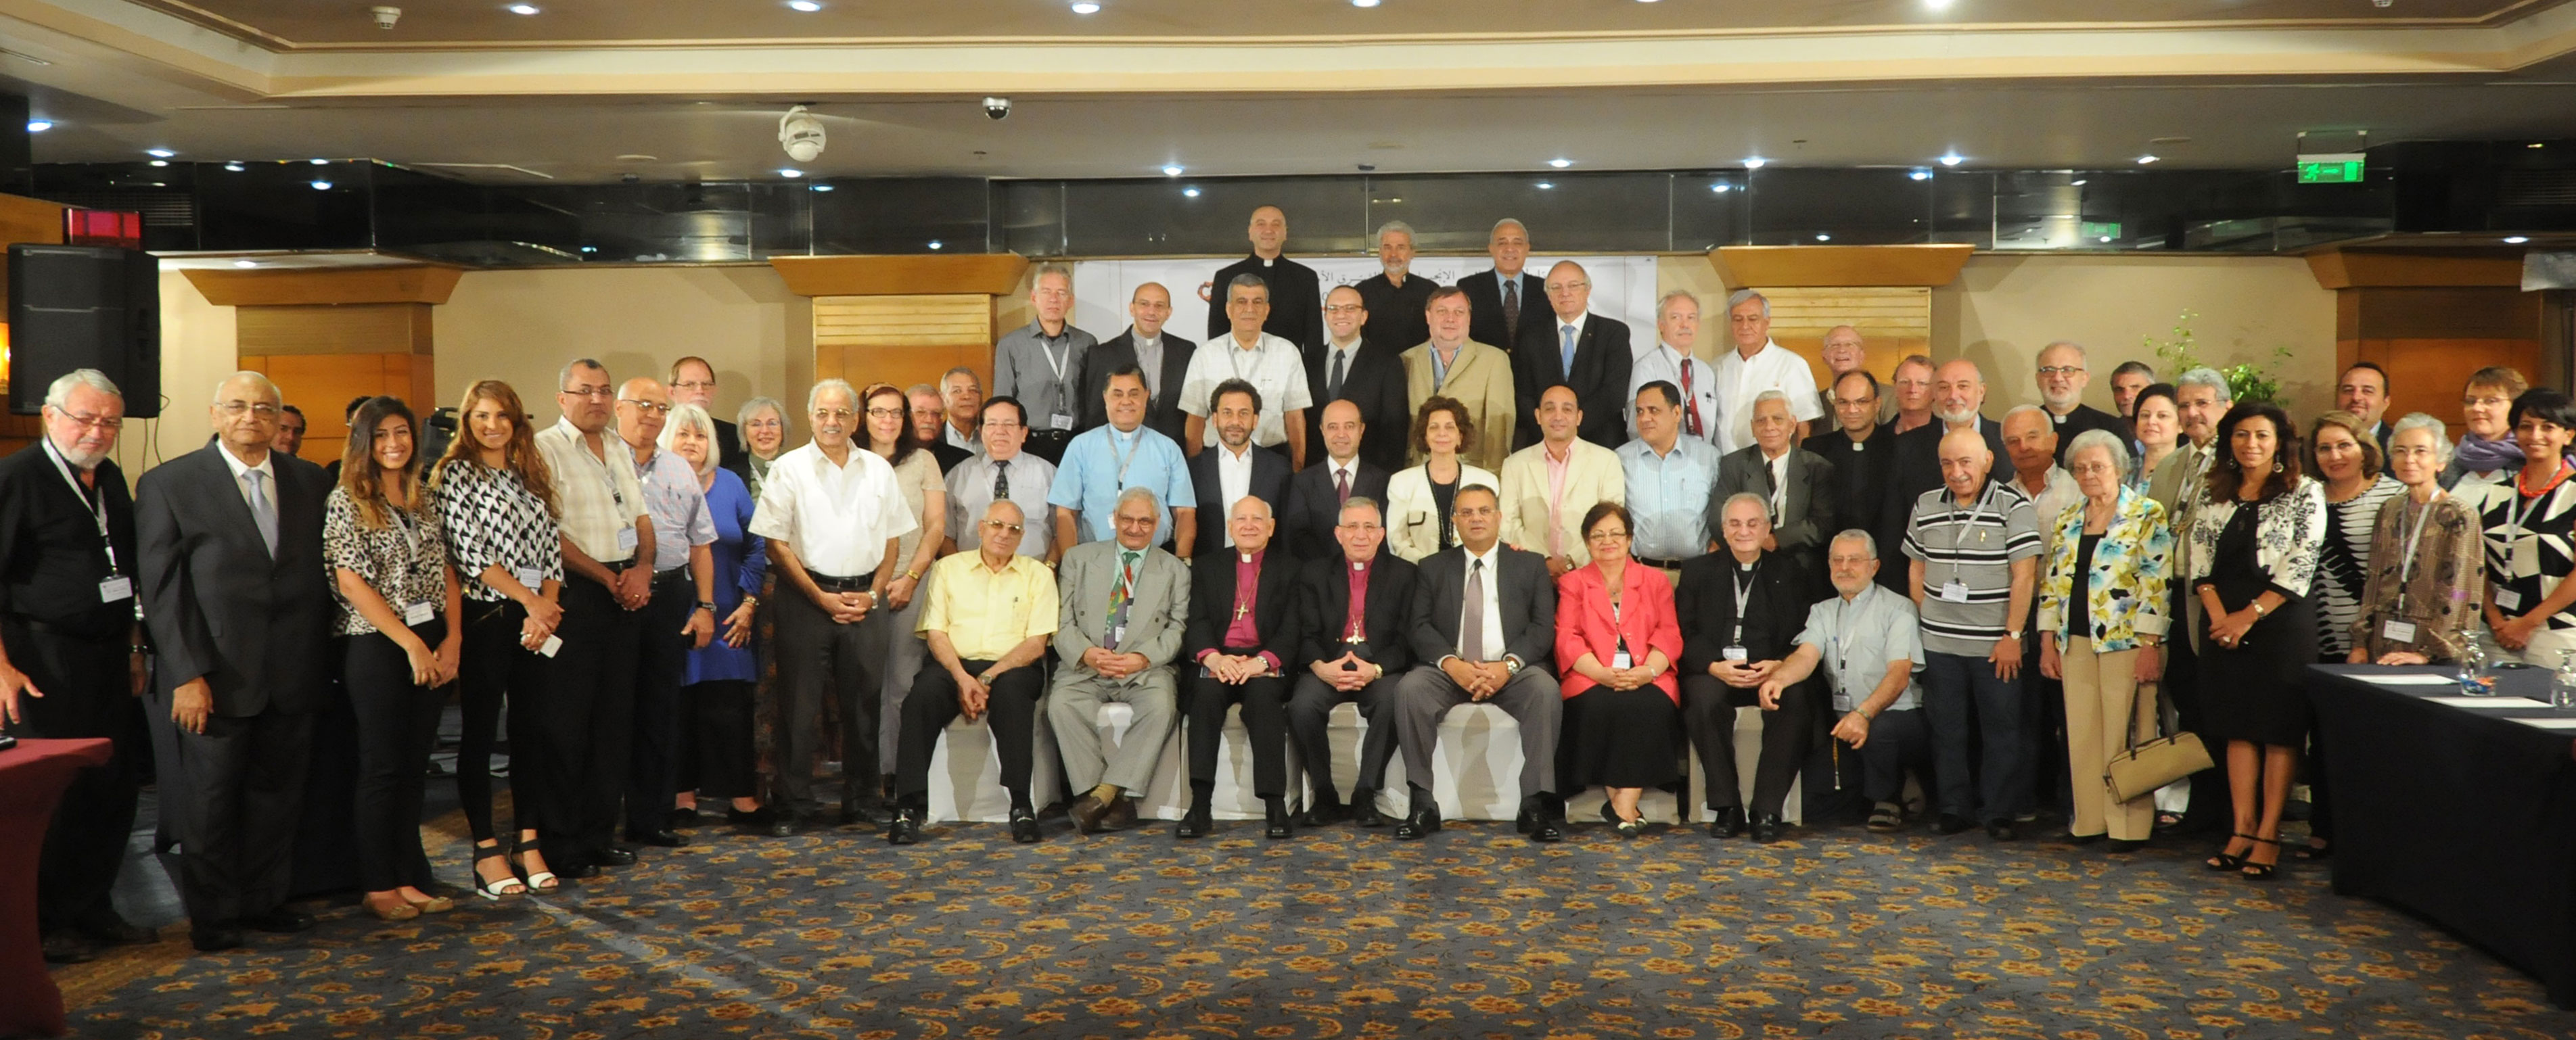 The Four Families of the Fellowship of Middle East Evangelical Churches (FMEEC) (©FMEEC)